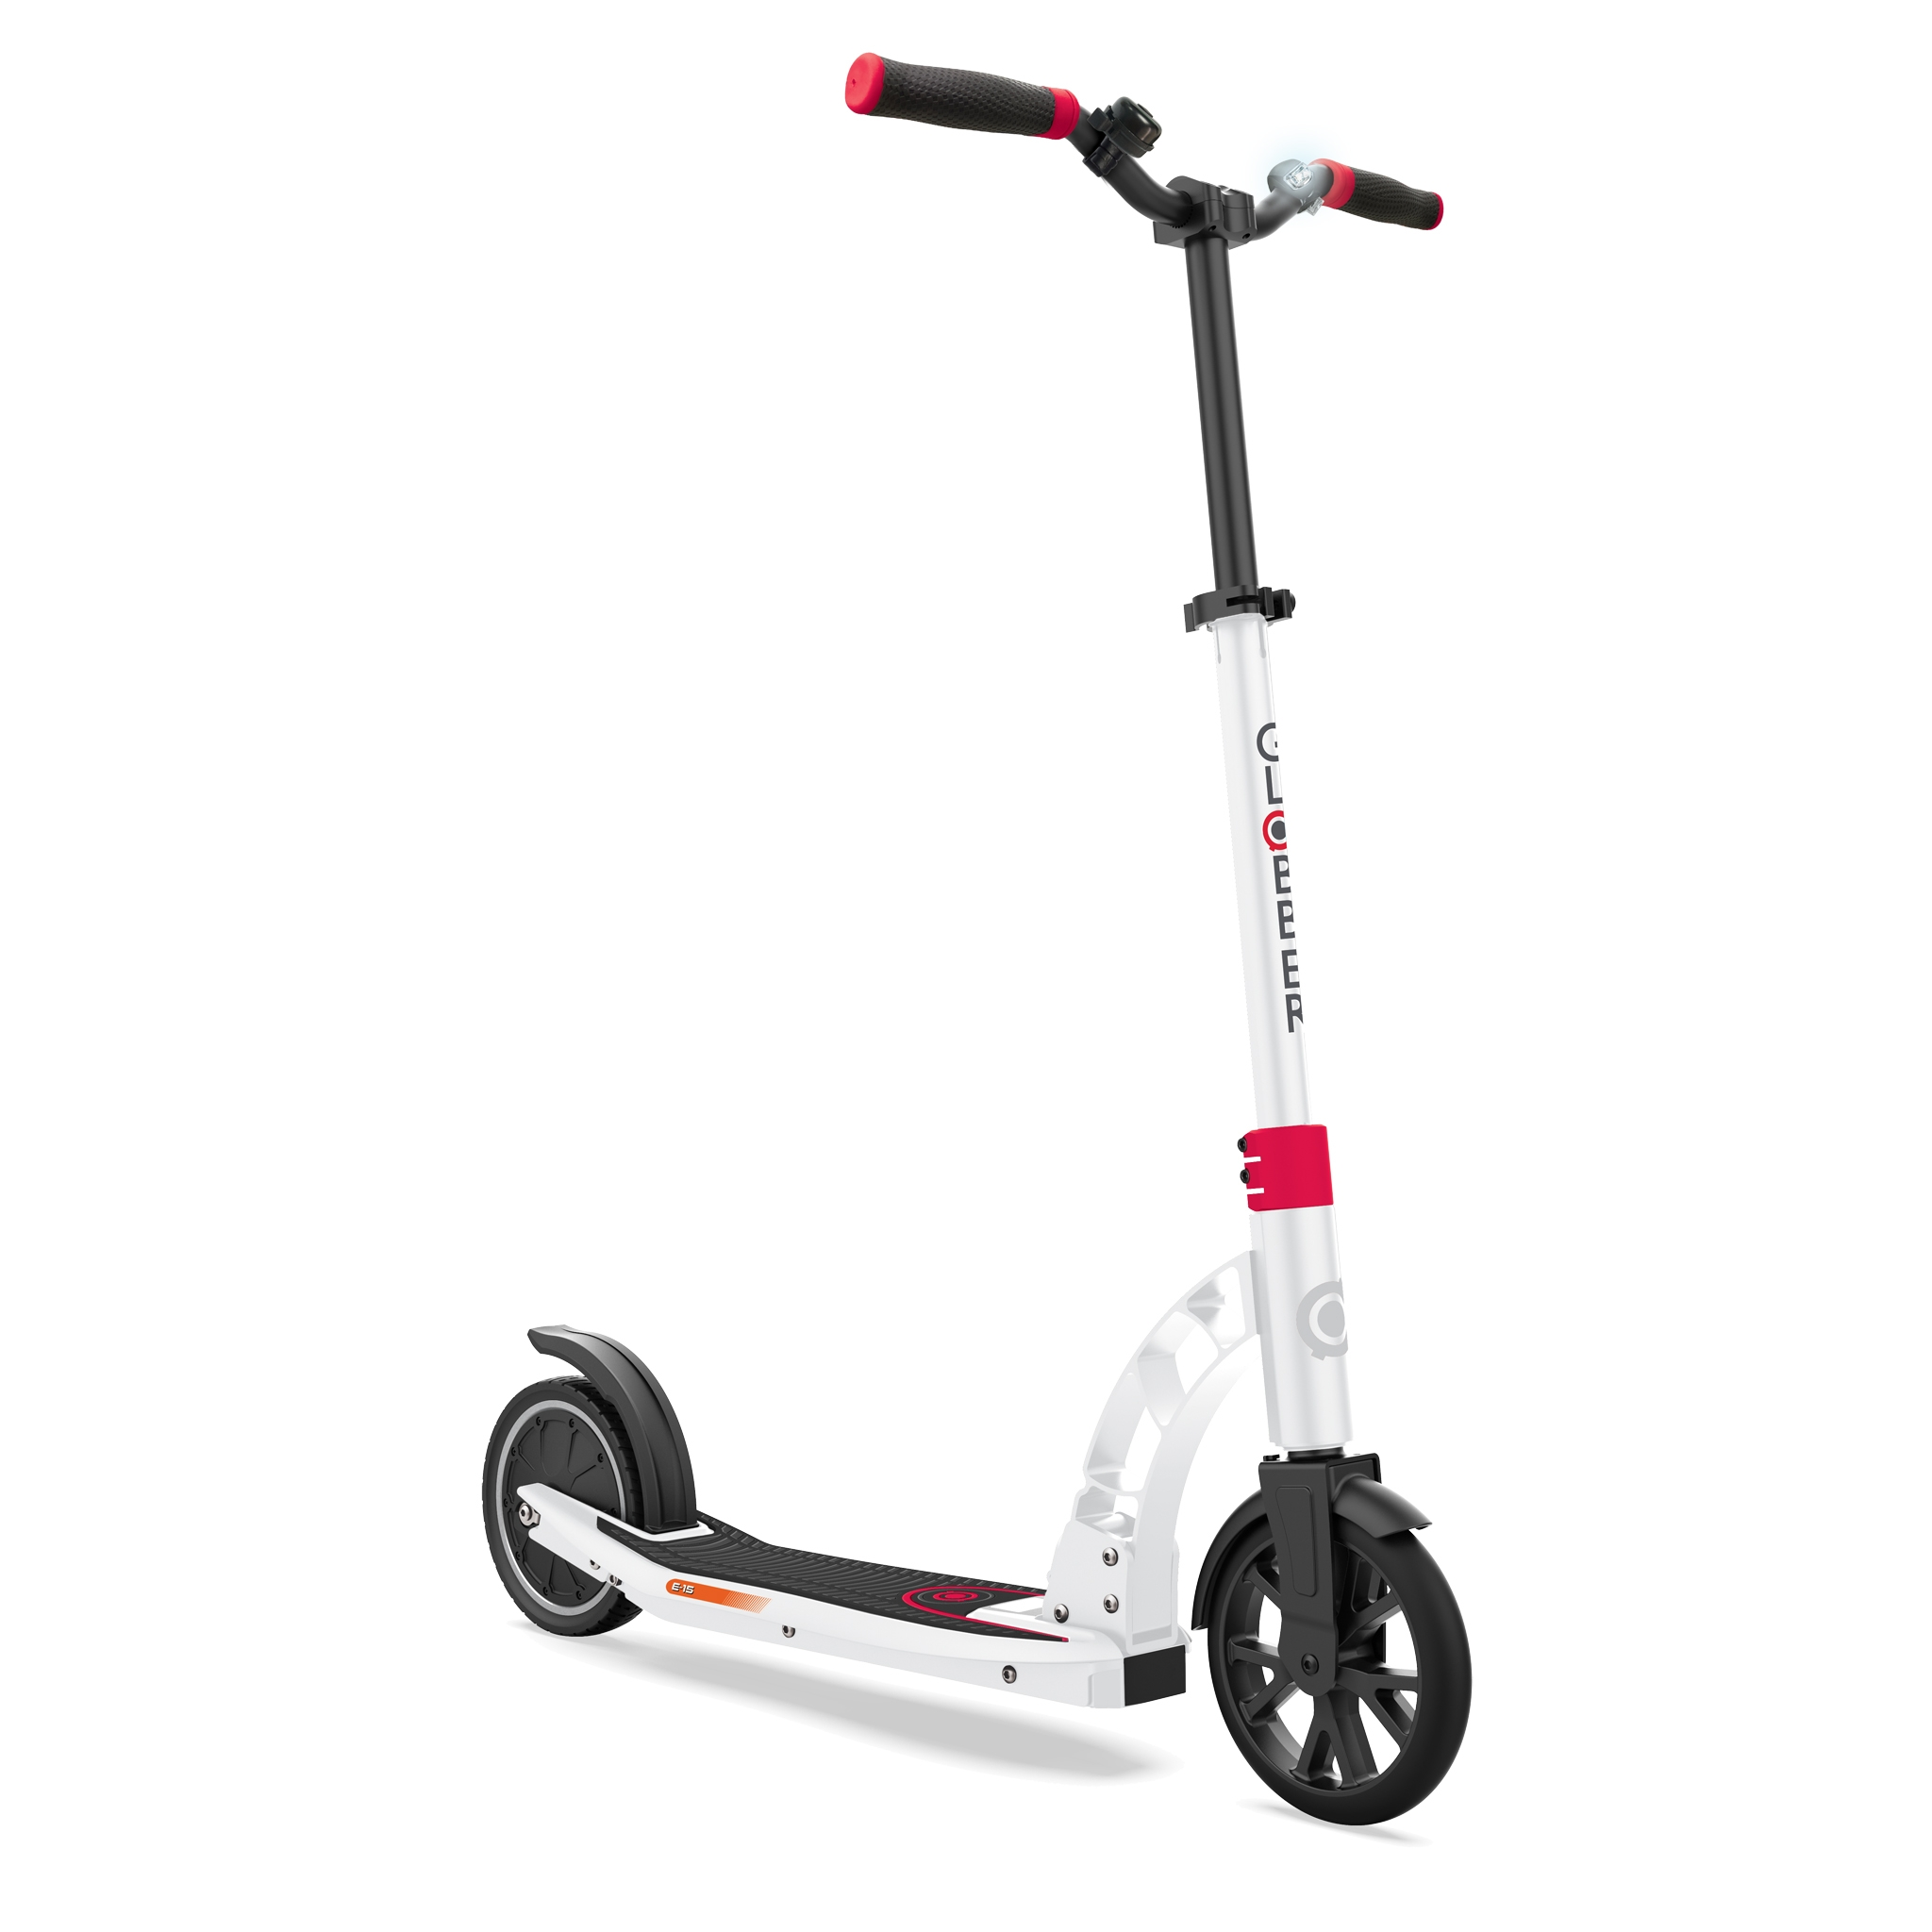 Globber-ONE-K-E-MOTION-15-foldable-electric-scooter-for-teens-and-young-adults-aged-14+-white-red